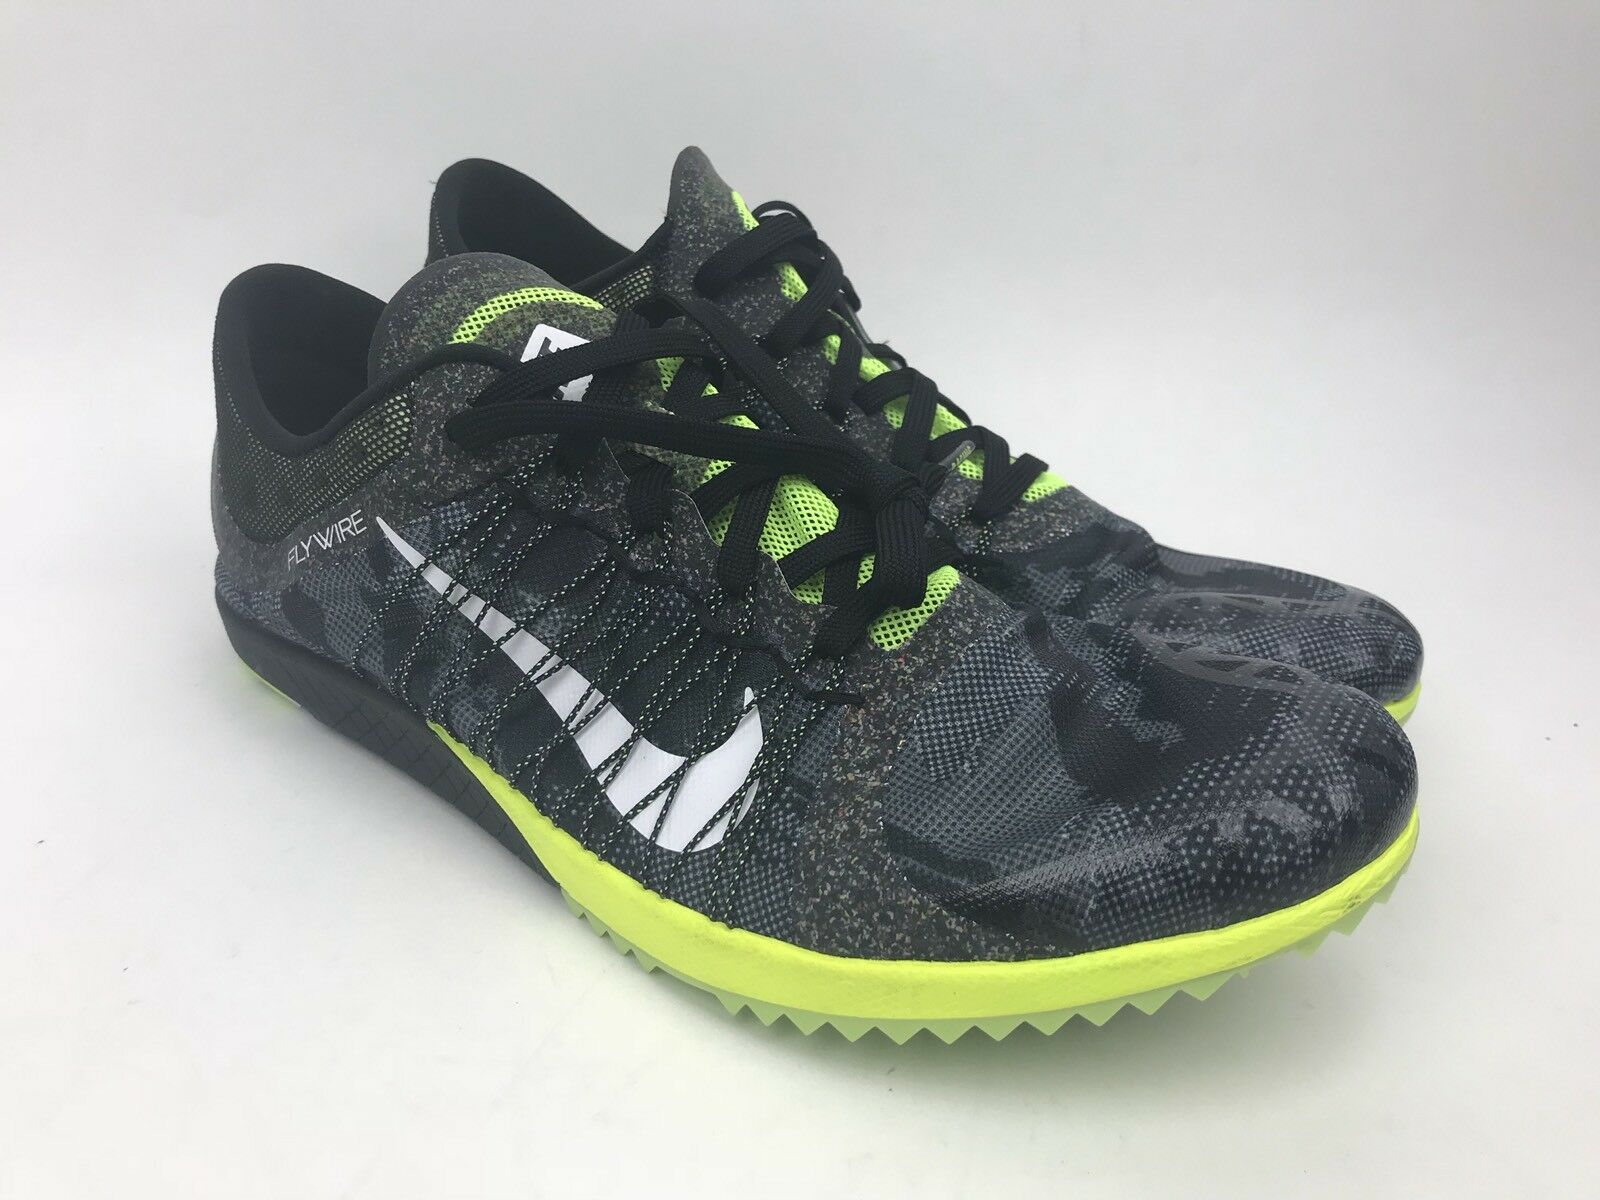 NIKE ZOOM VICTORY XC TRACK AND FIELD SHOES MENS 654693-017 NEW SIZE 13